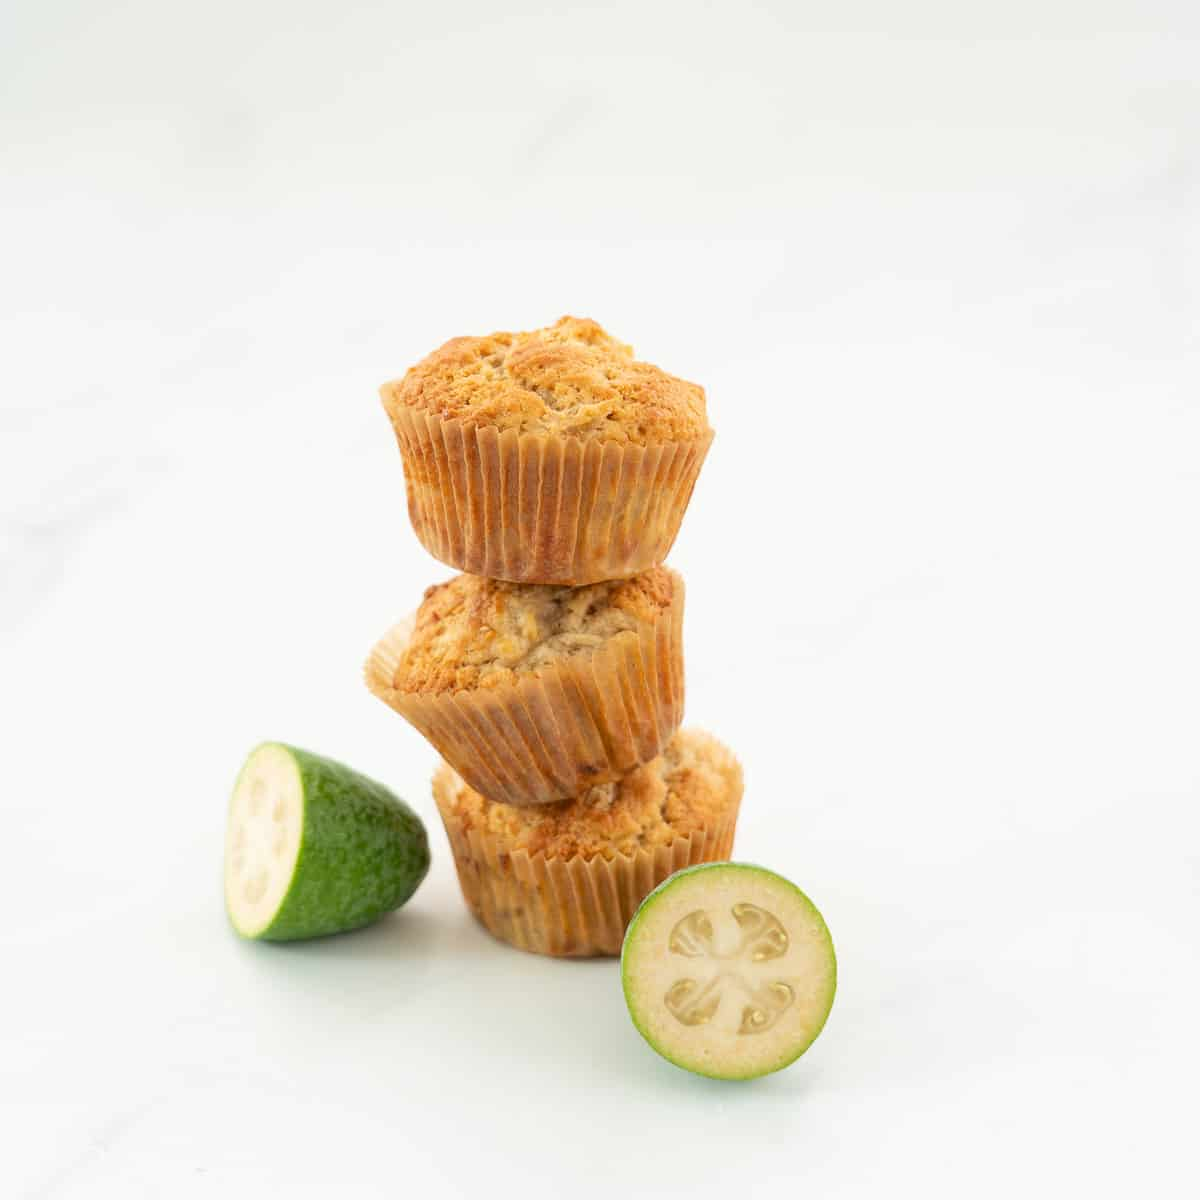 Stack of 3 muffins with a halved feijoa.